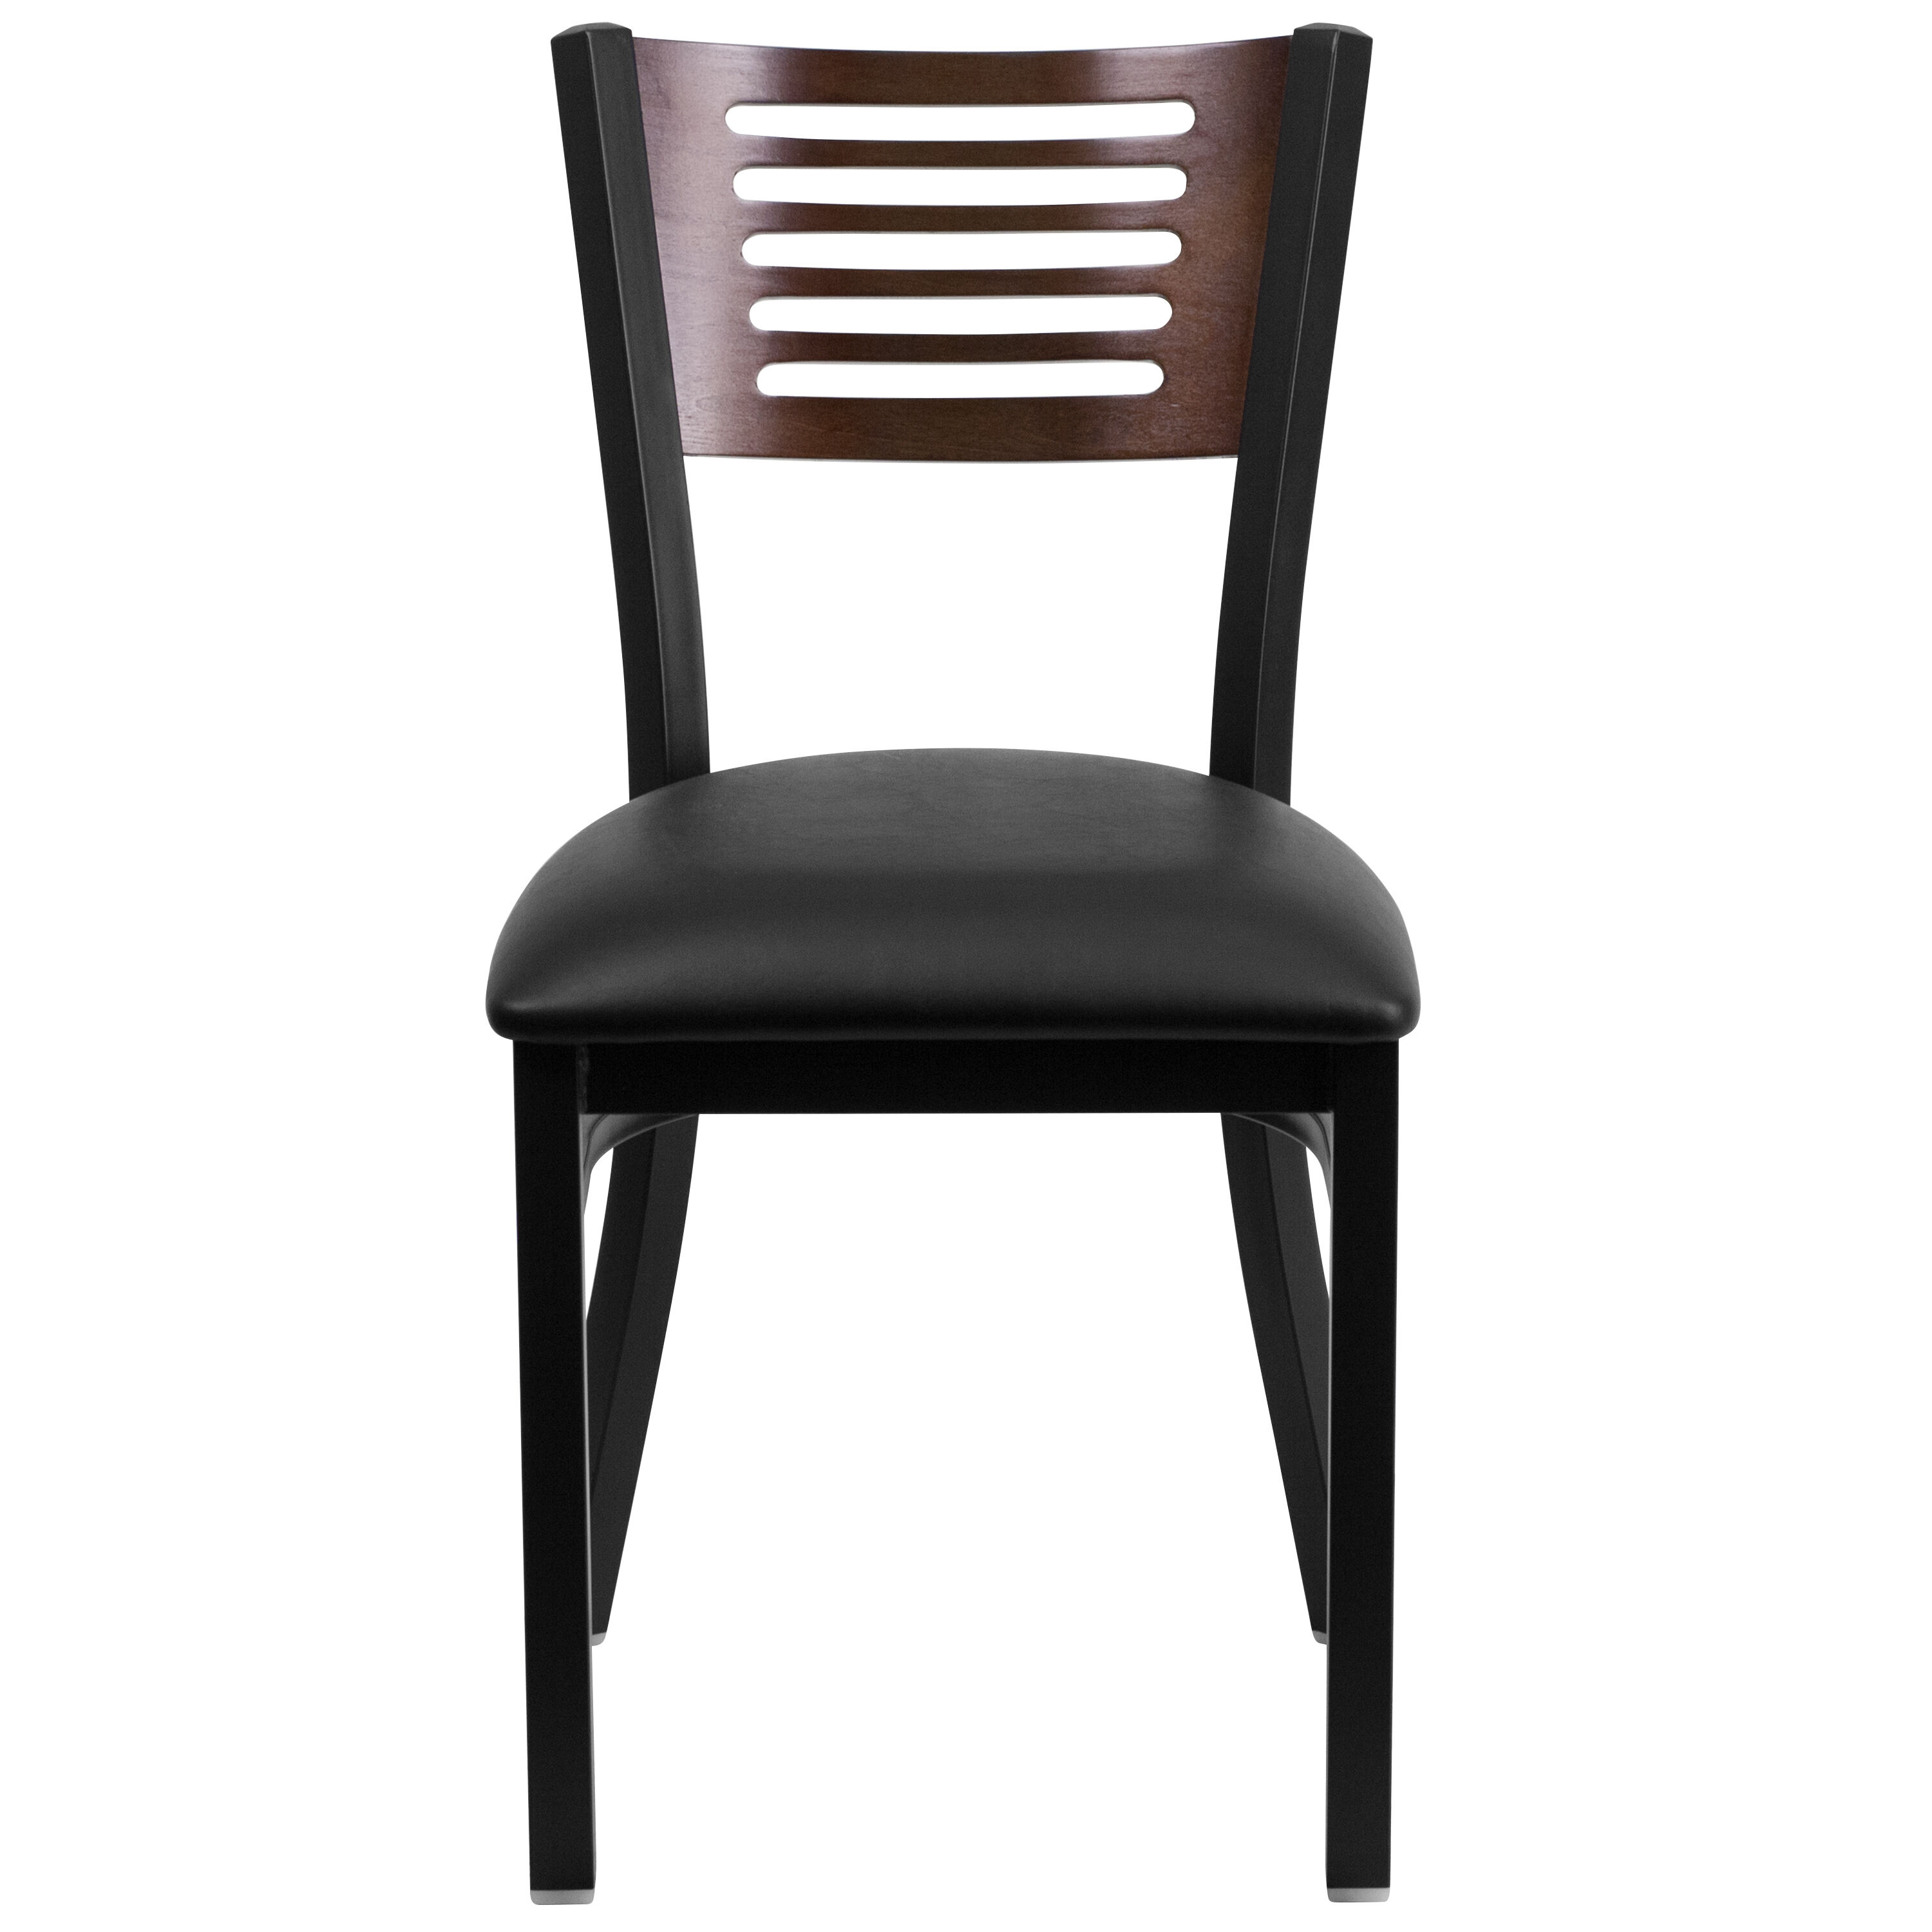 Restaurant Chairs T And D Restaurant Equipment Bfdh 90156 Wal Bk Tdr